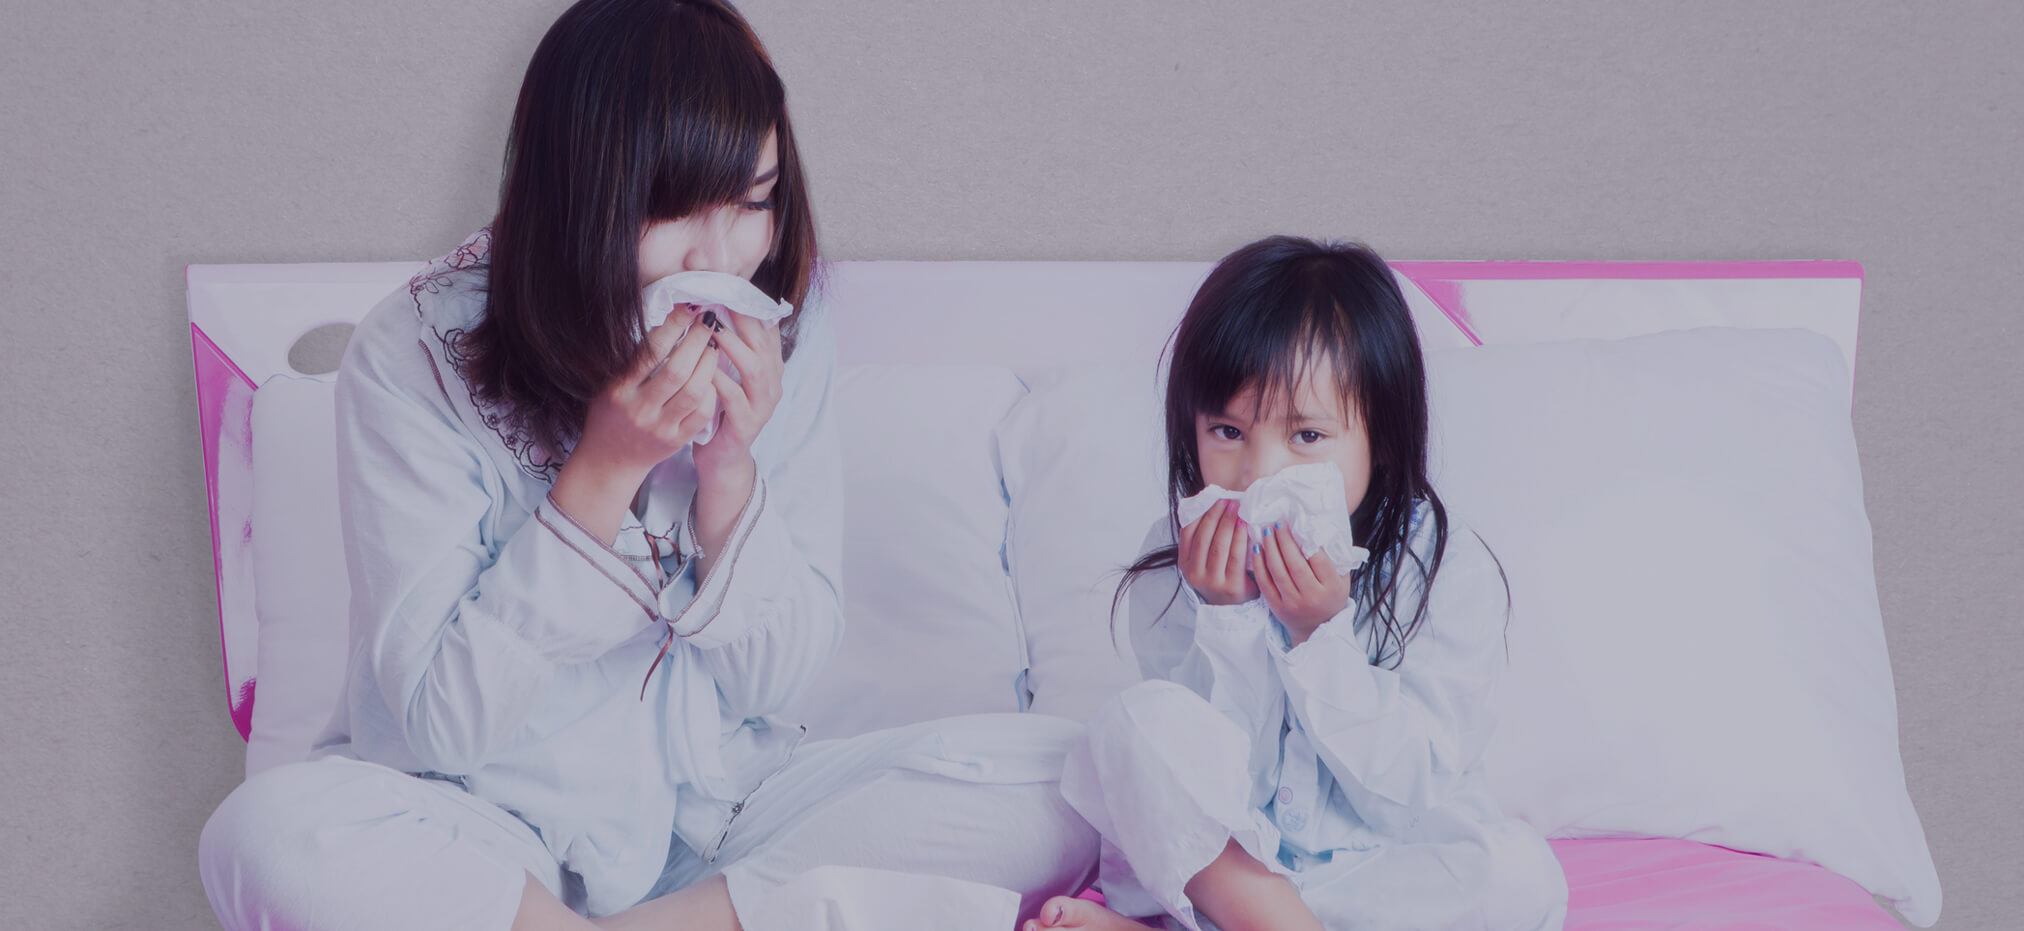 V1-Momclone-Moms-dont-get-Sick-mother-and-child-wiping-noses